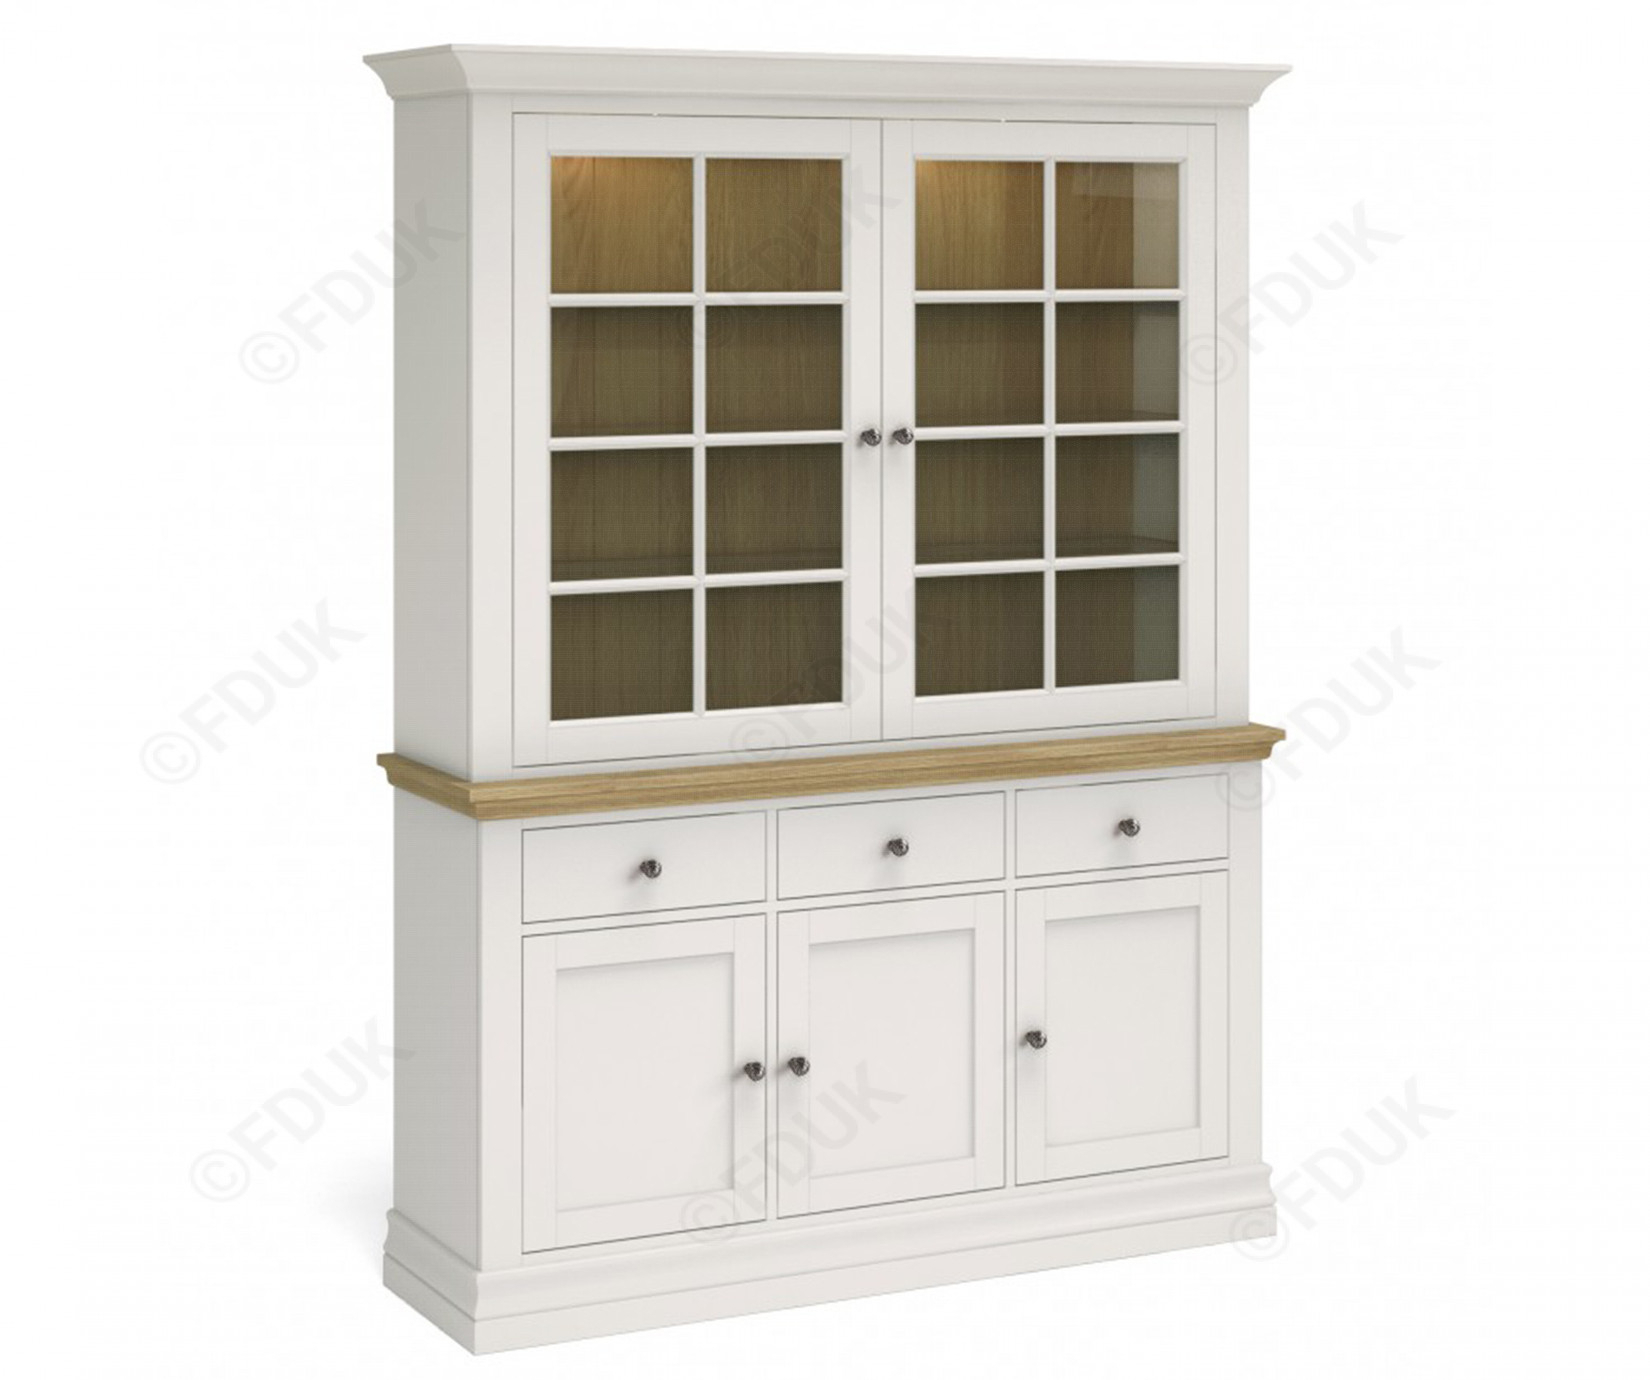 Corndell Annecy Large Sideboard With Dresser Top Fduk Best Price Guarantee  We Will Beat Our Competitors Price! Give Our Sales Team A Call On 0116 235 Pertaining To Latest Annecy Sideboards (#12 of 20)